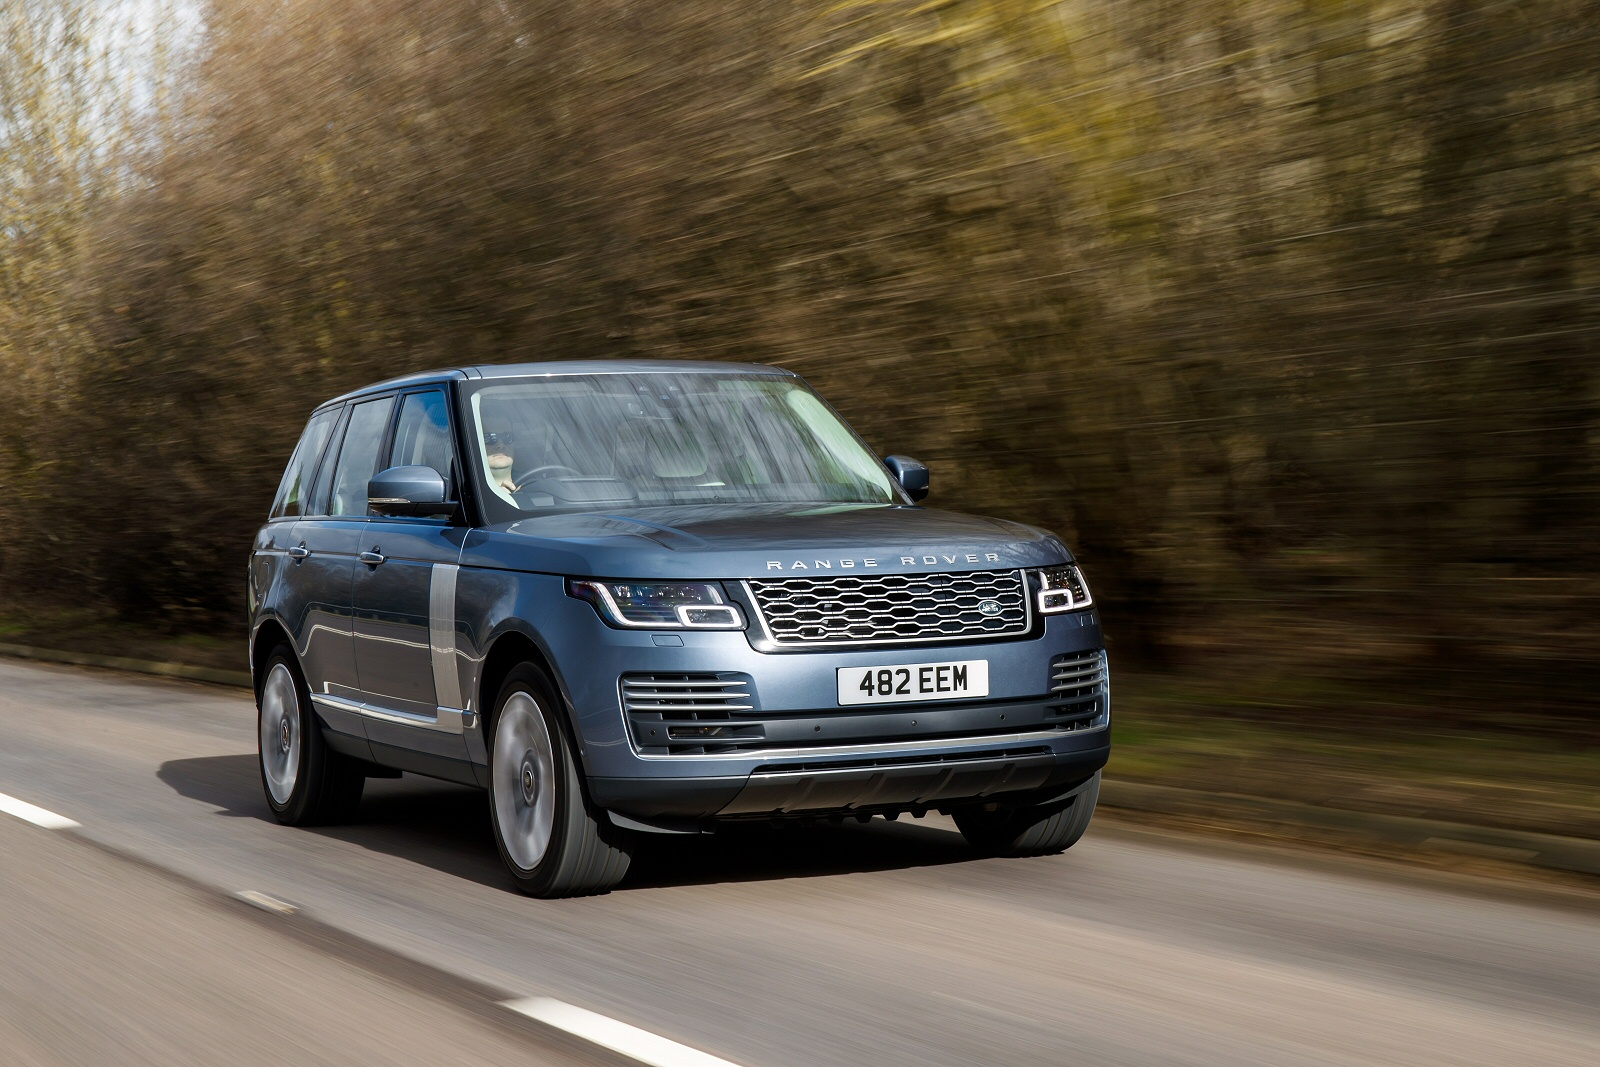 'FRIEND OF THE EARTH' - Range Rover P400e Independent New ...